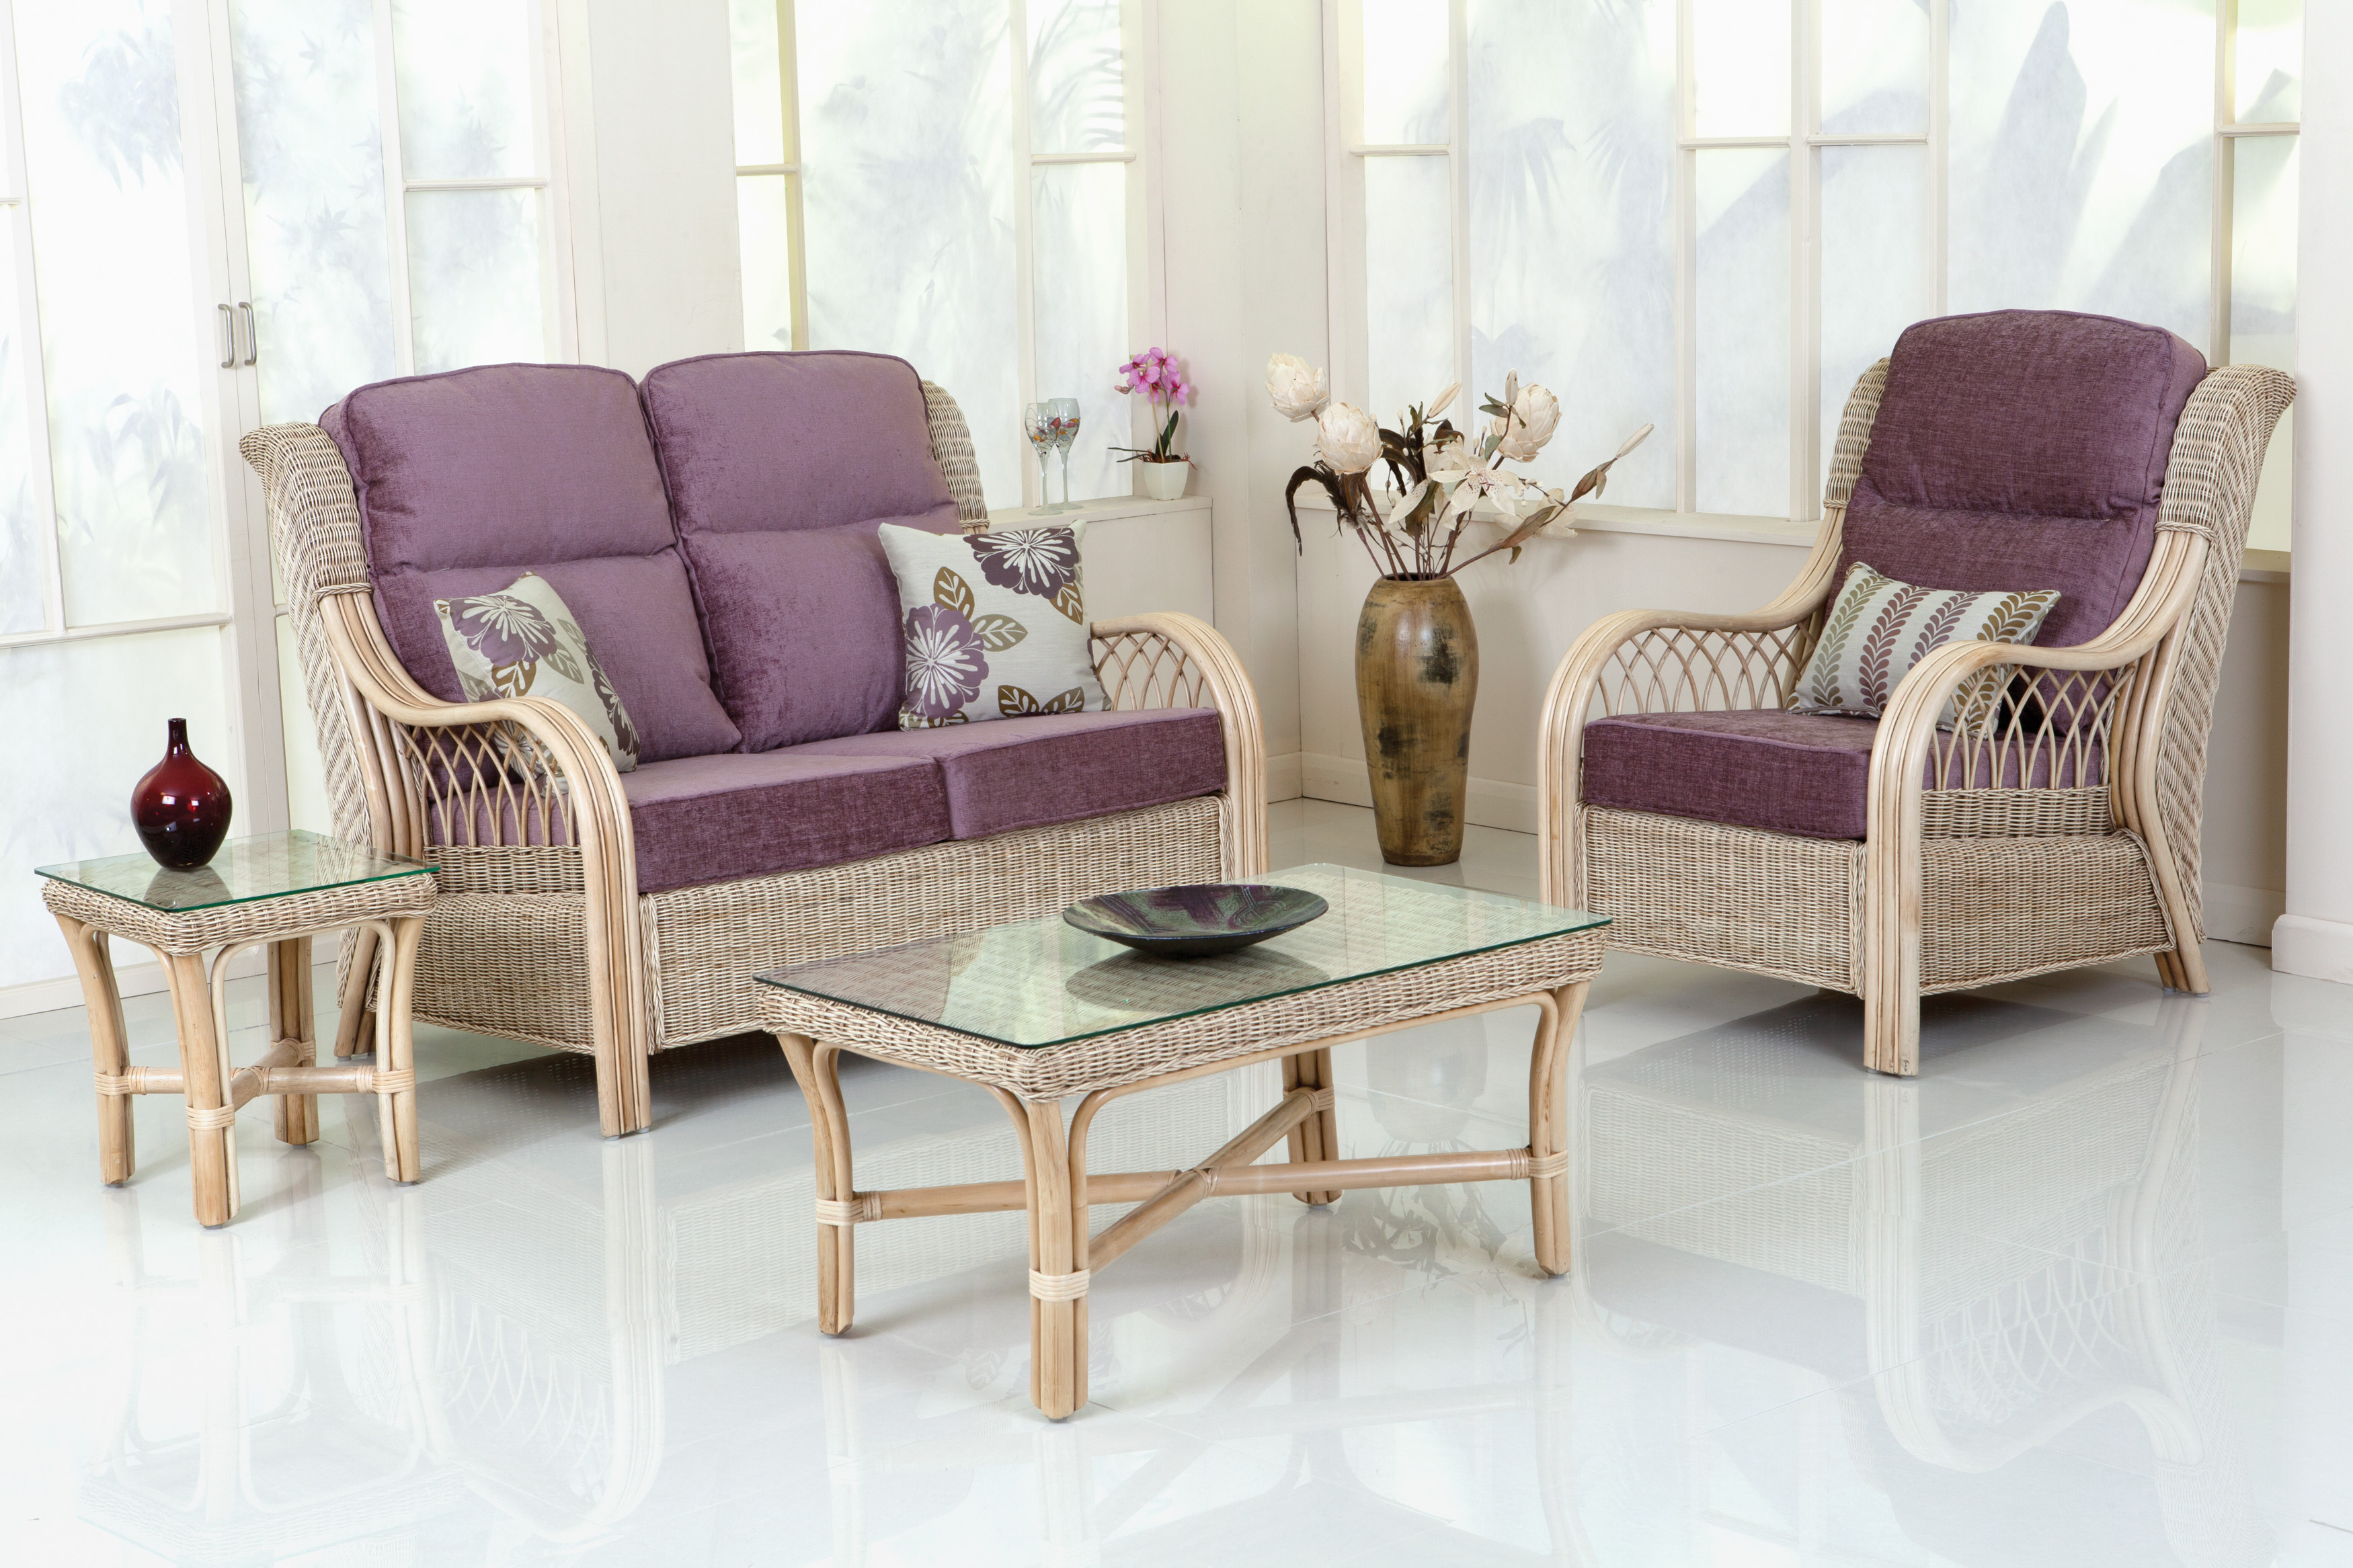 Modern Cane Furniture